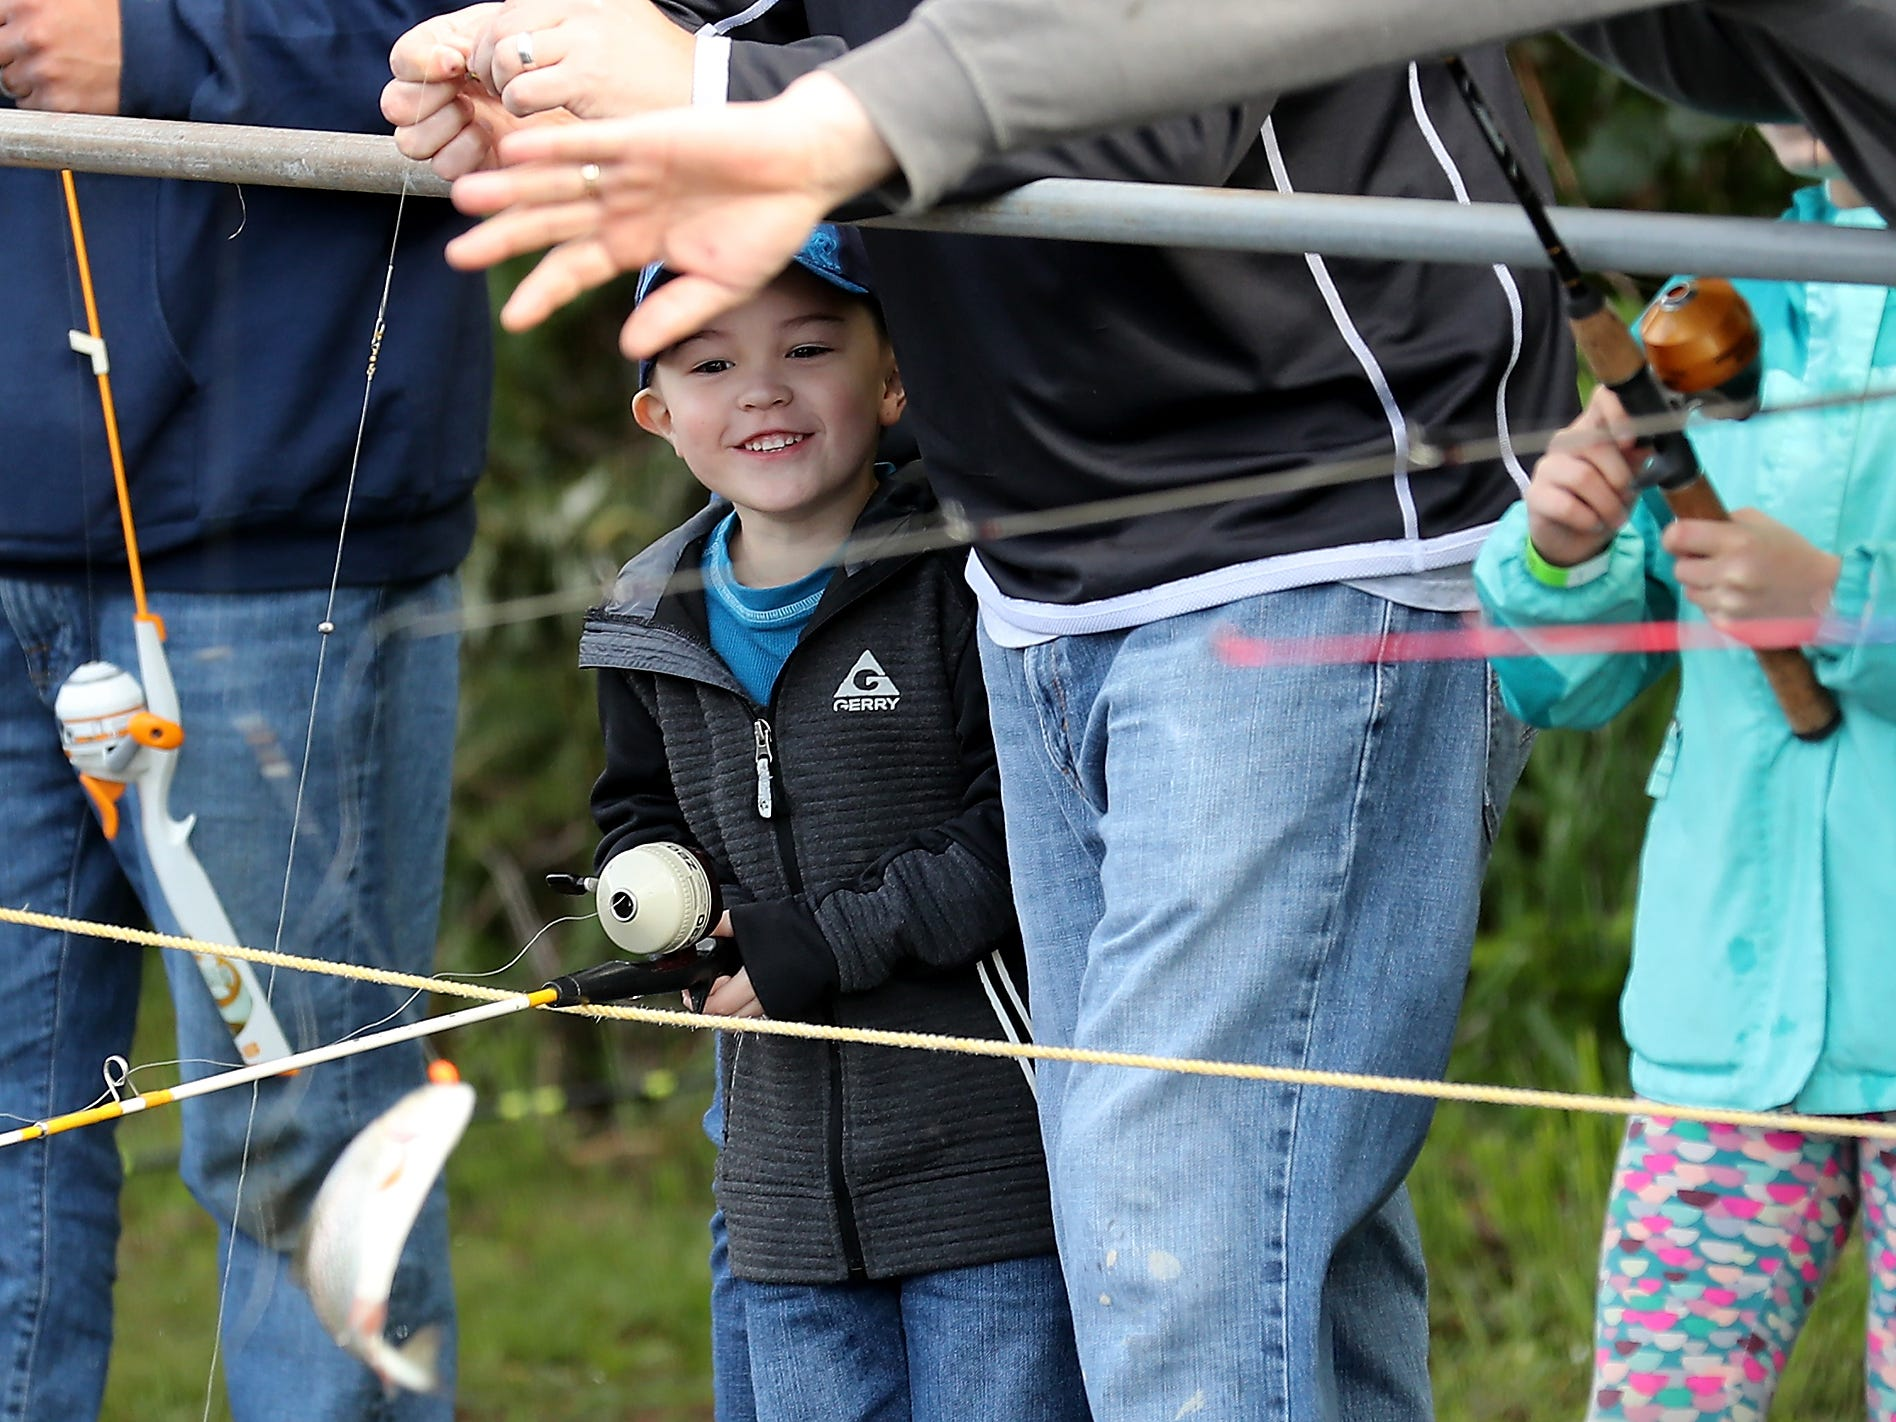 Kitsap Poggie Club hosts their 71st. Annual Kids Fishing Party at the Jarstad Park Hatchery in Gorst on Saturday, April 27, 2019.